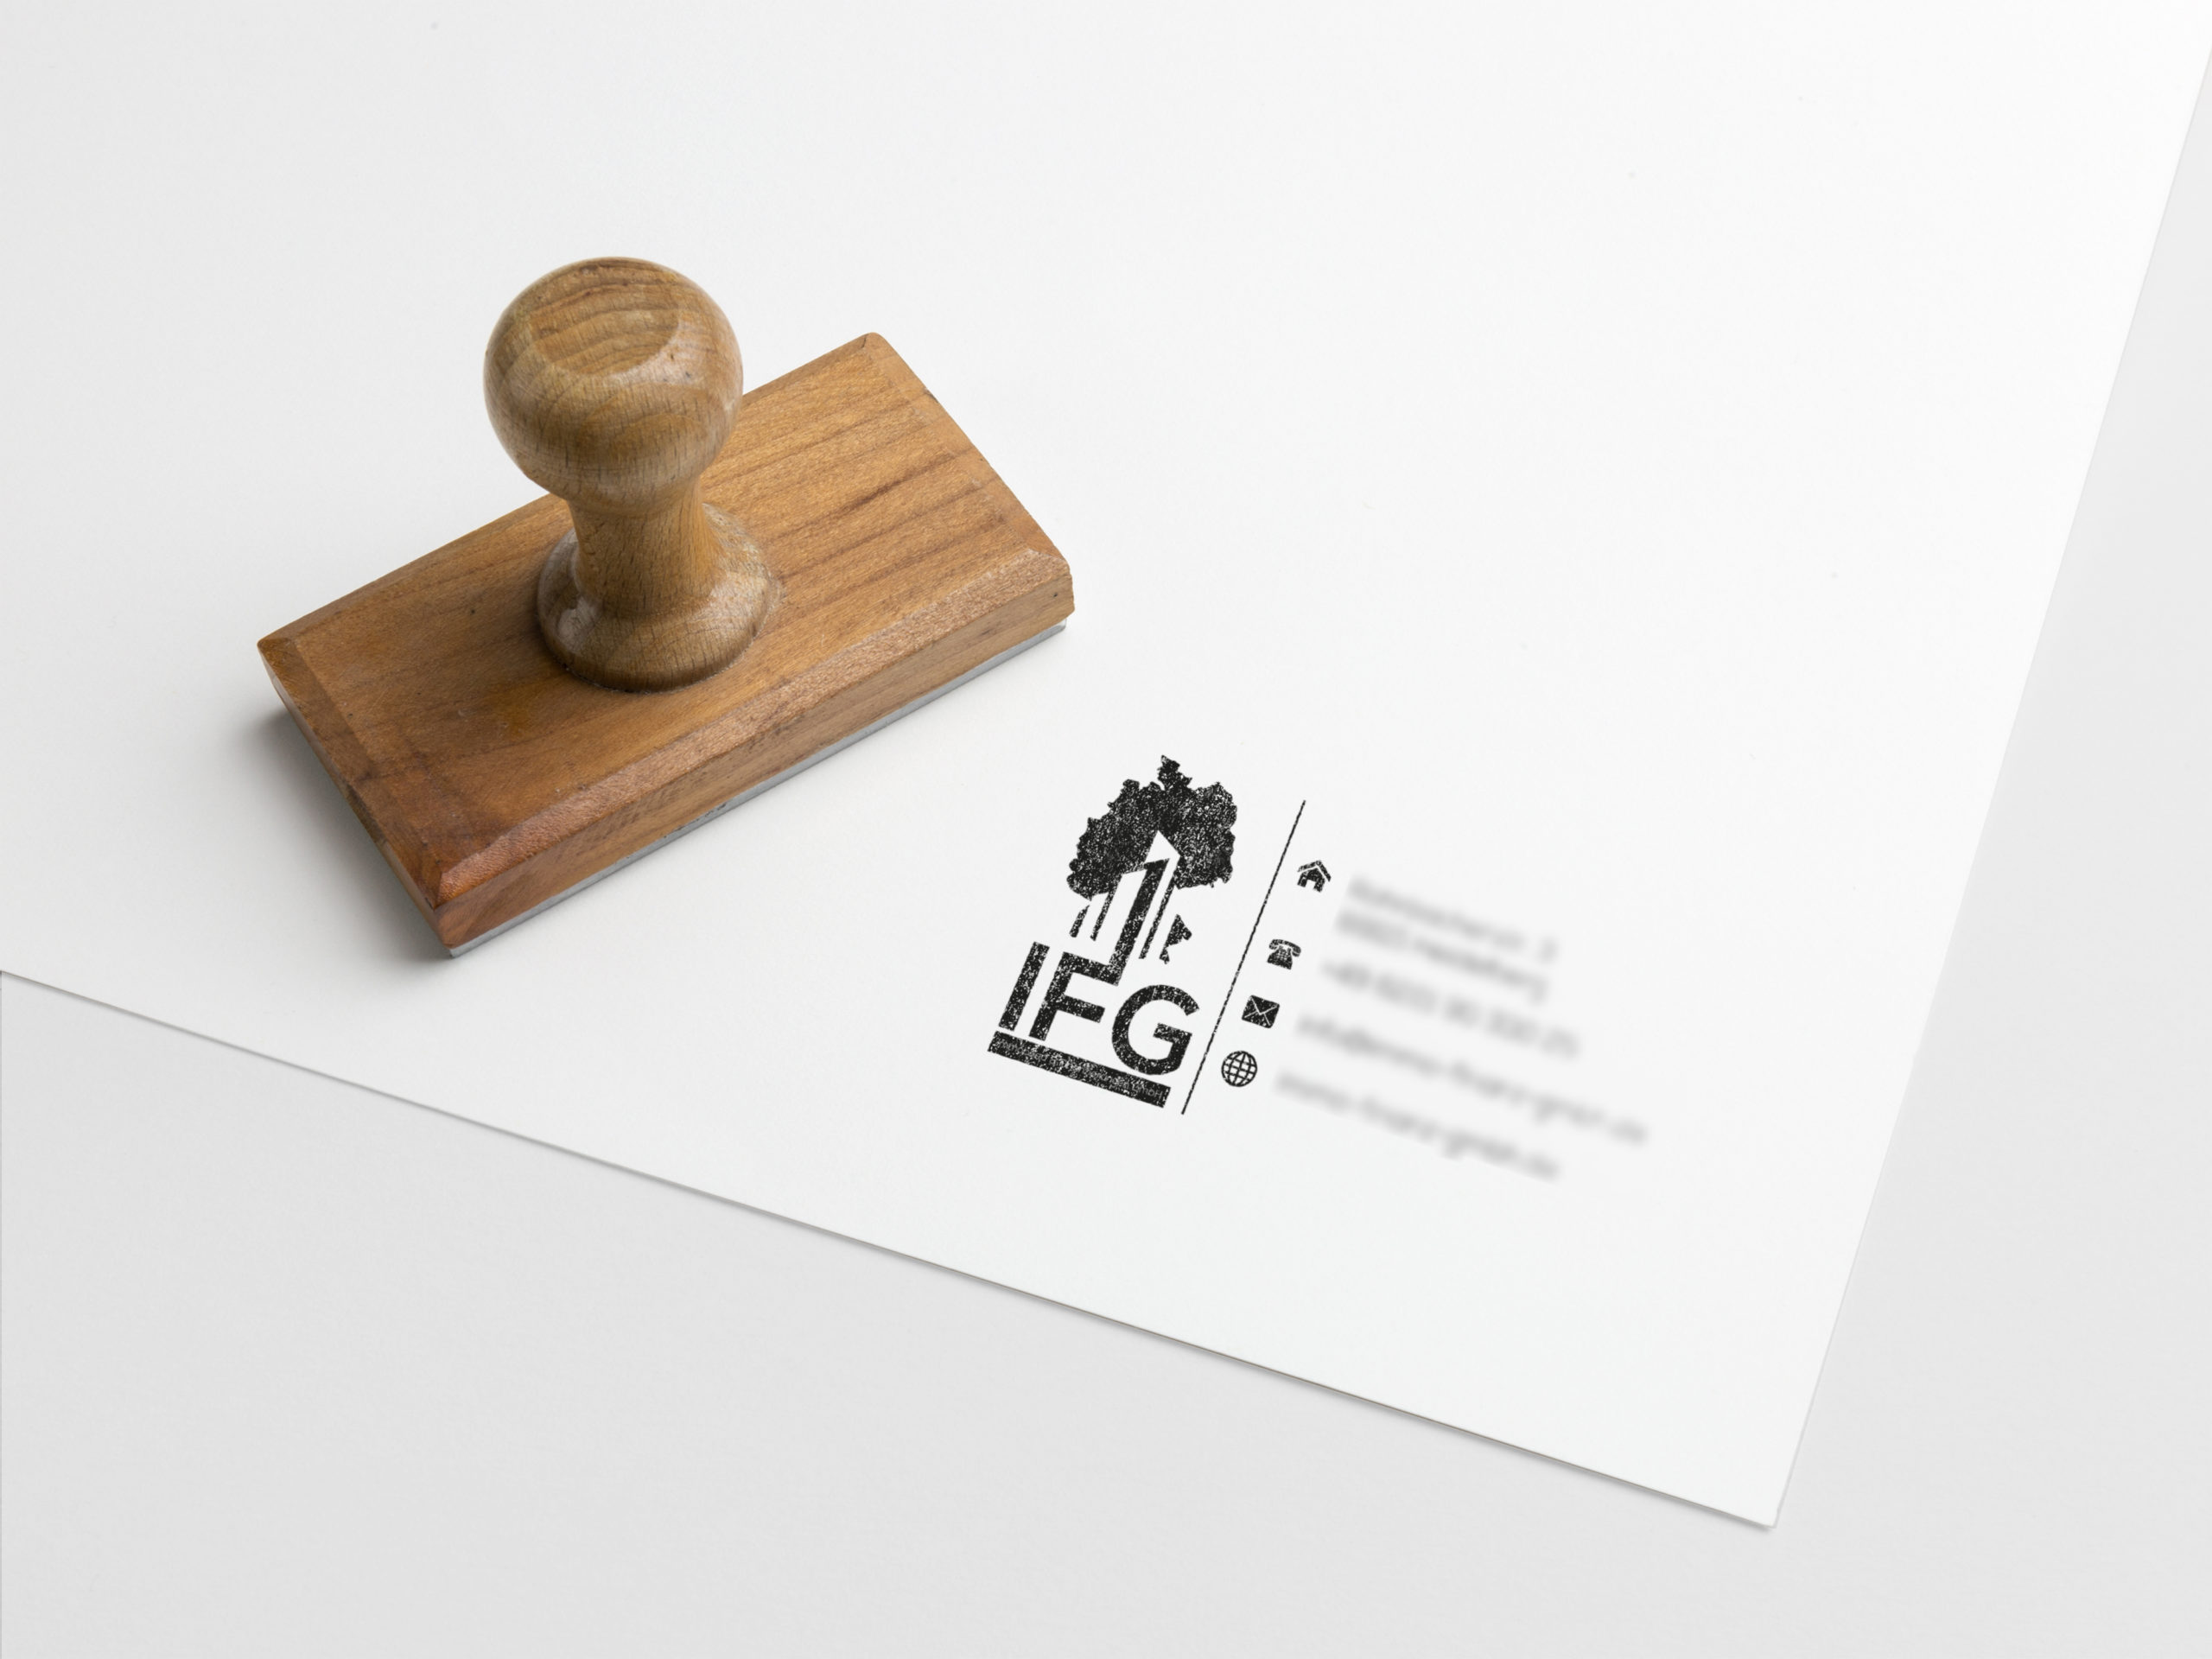 Stempel scaled